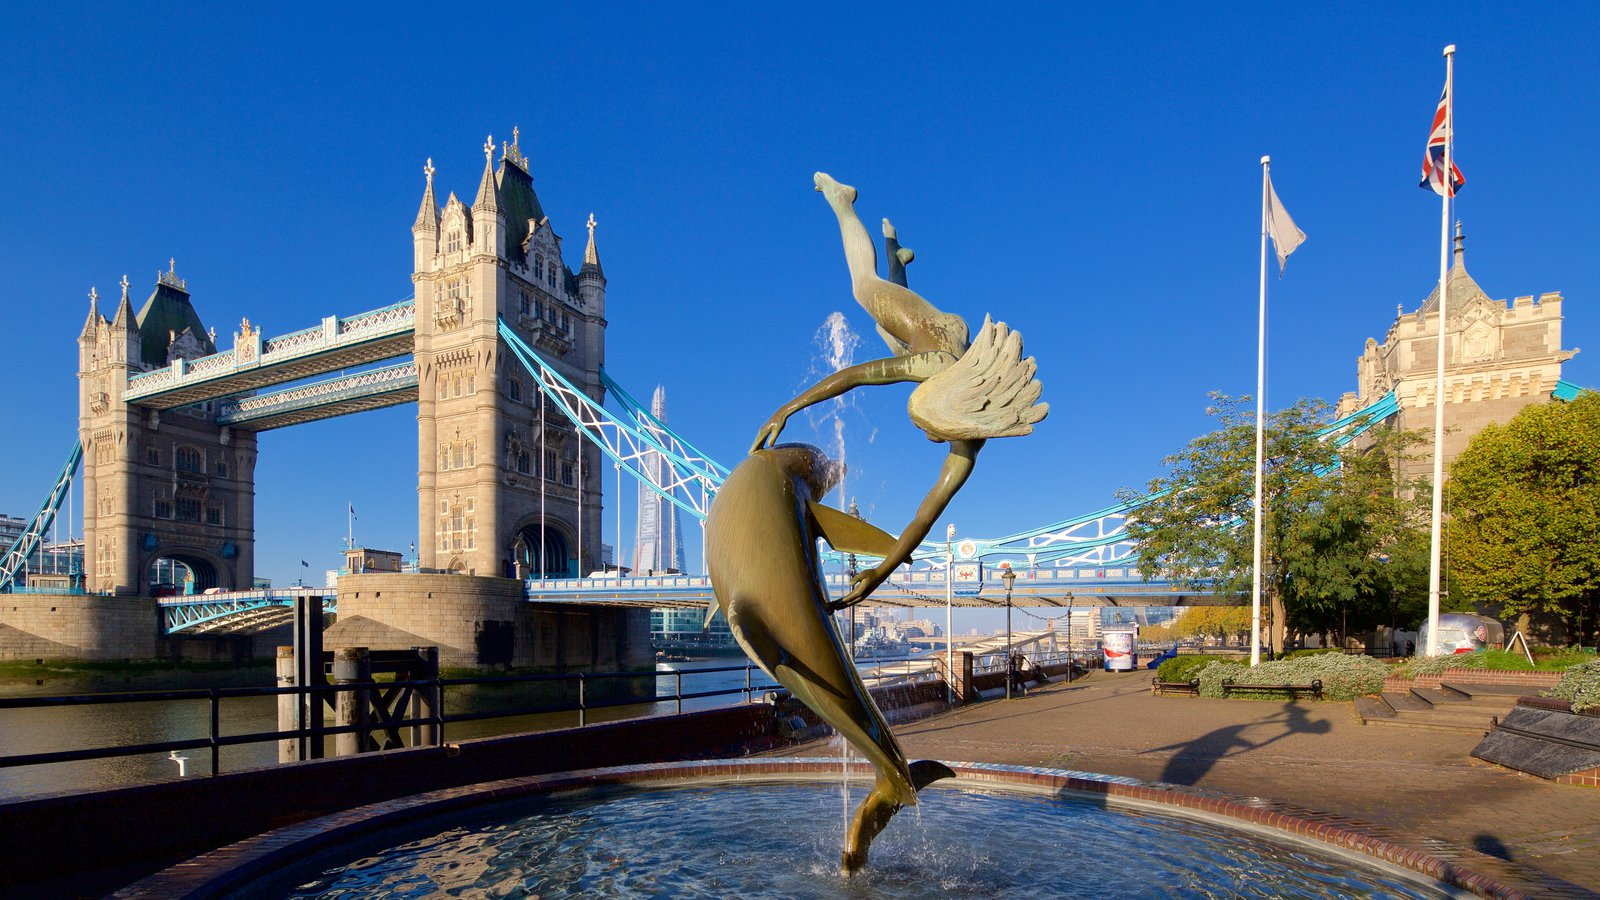 Tower Bridge which includes heritage architecture, a bridge and a fountain